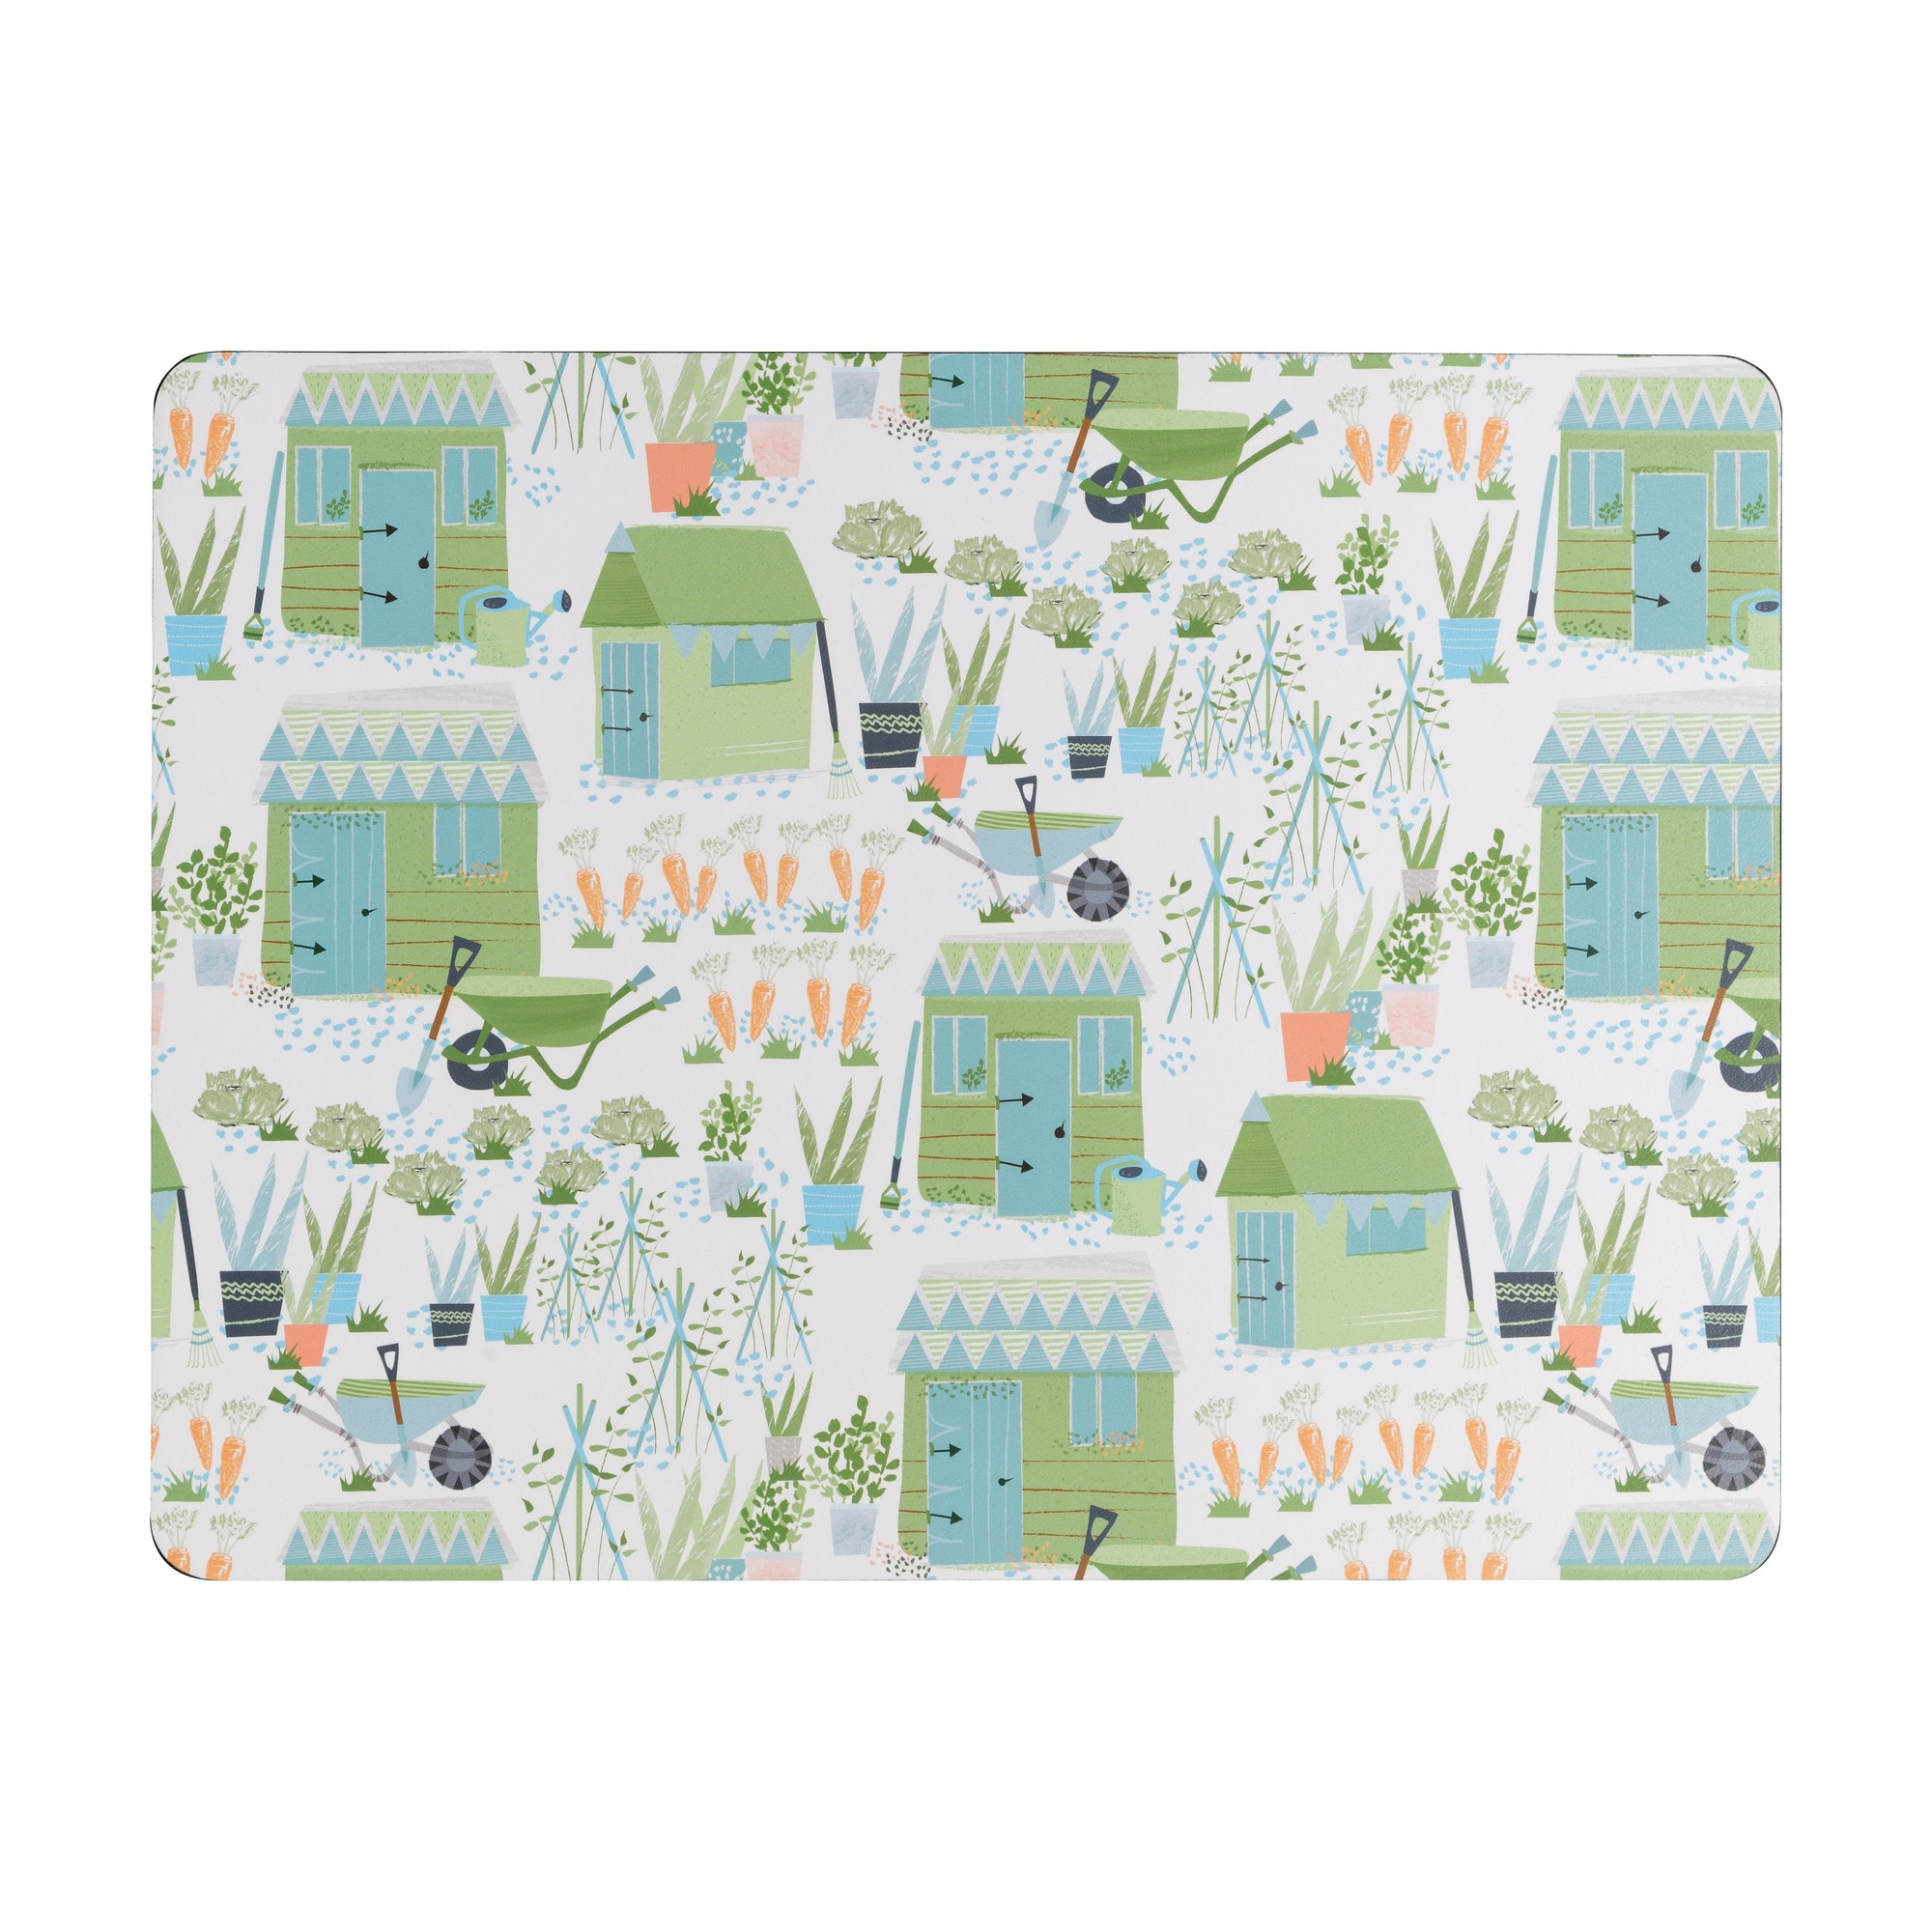 Compare prices for Denby Allotment Placemats Pack of 6